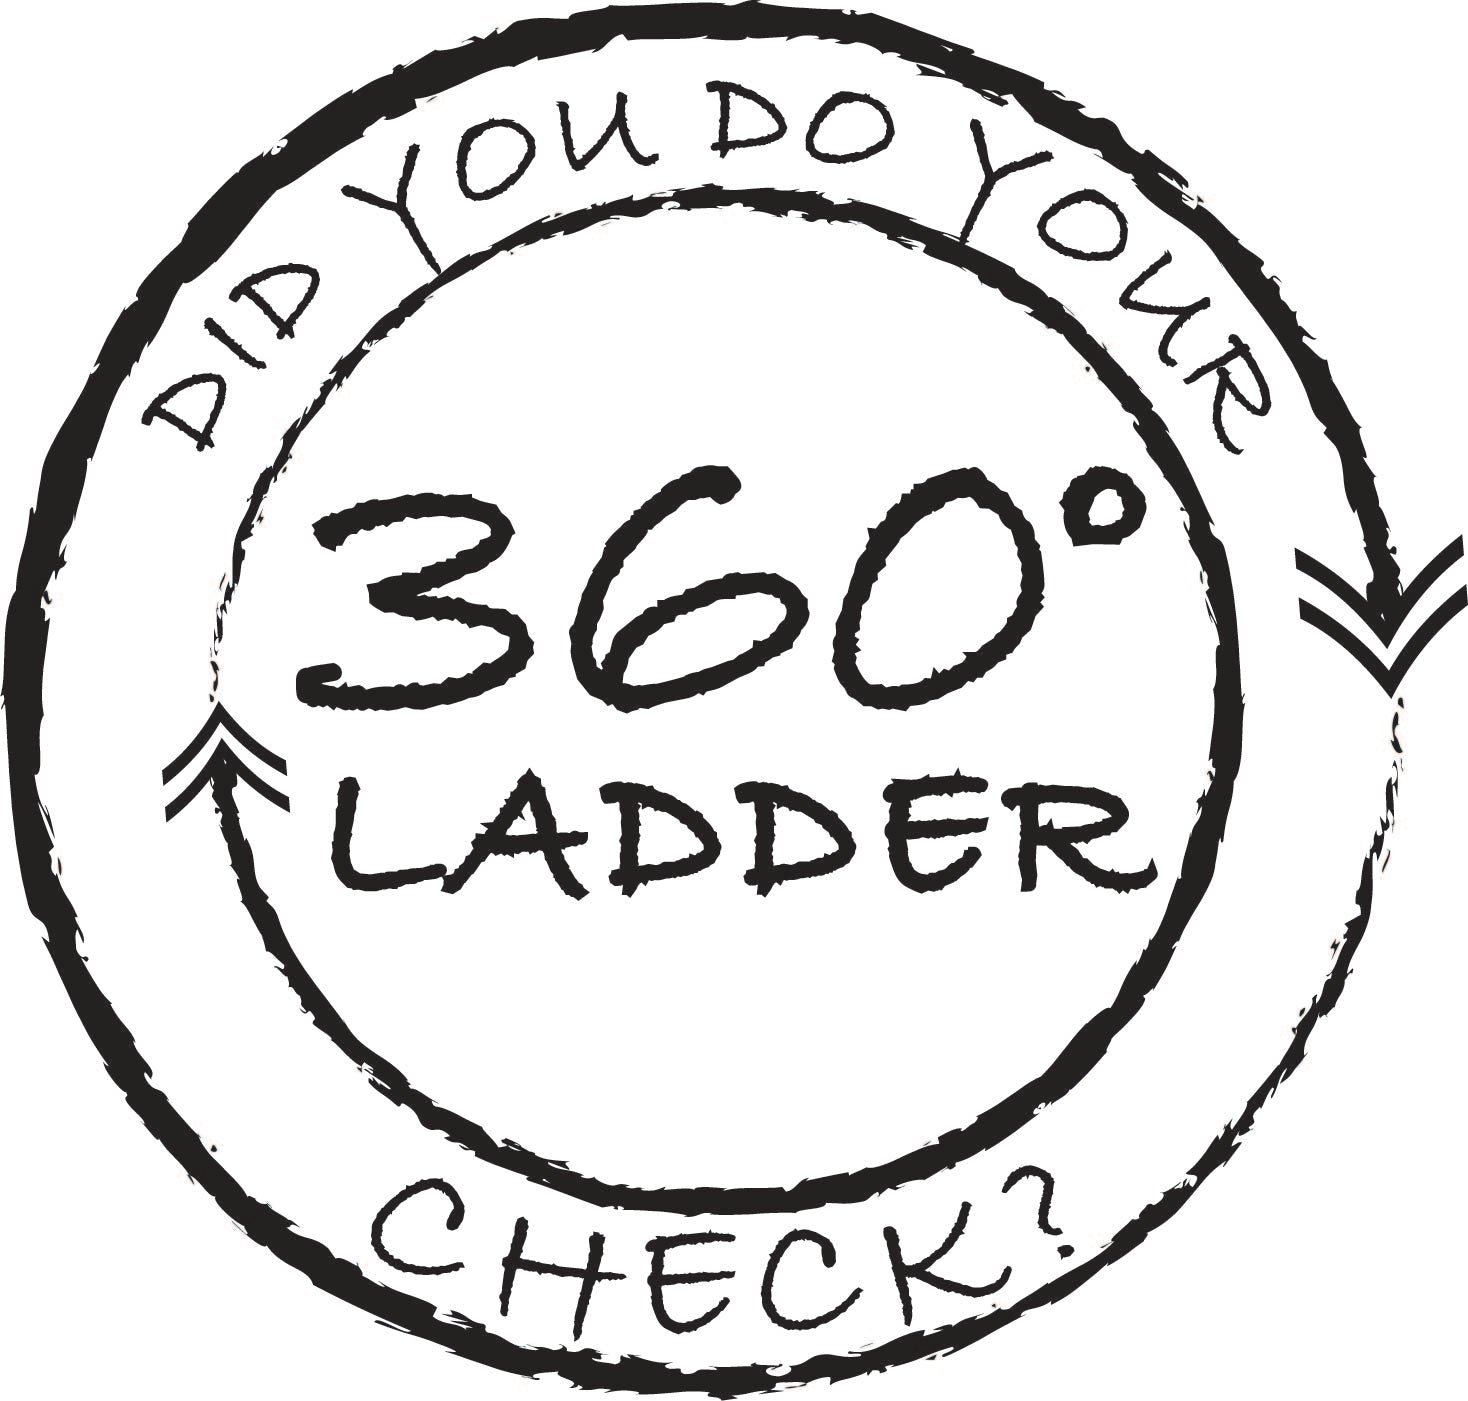 21S1 360 Ladder Check